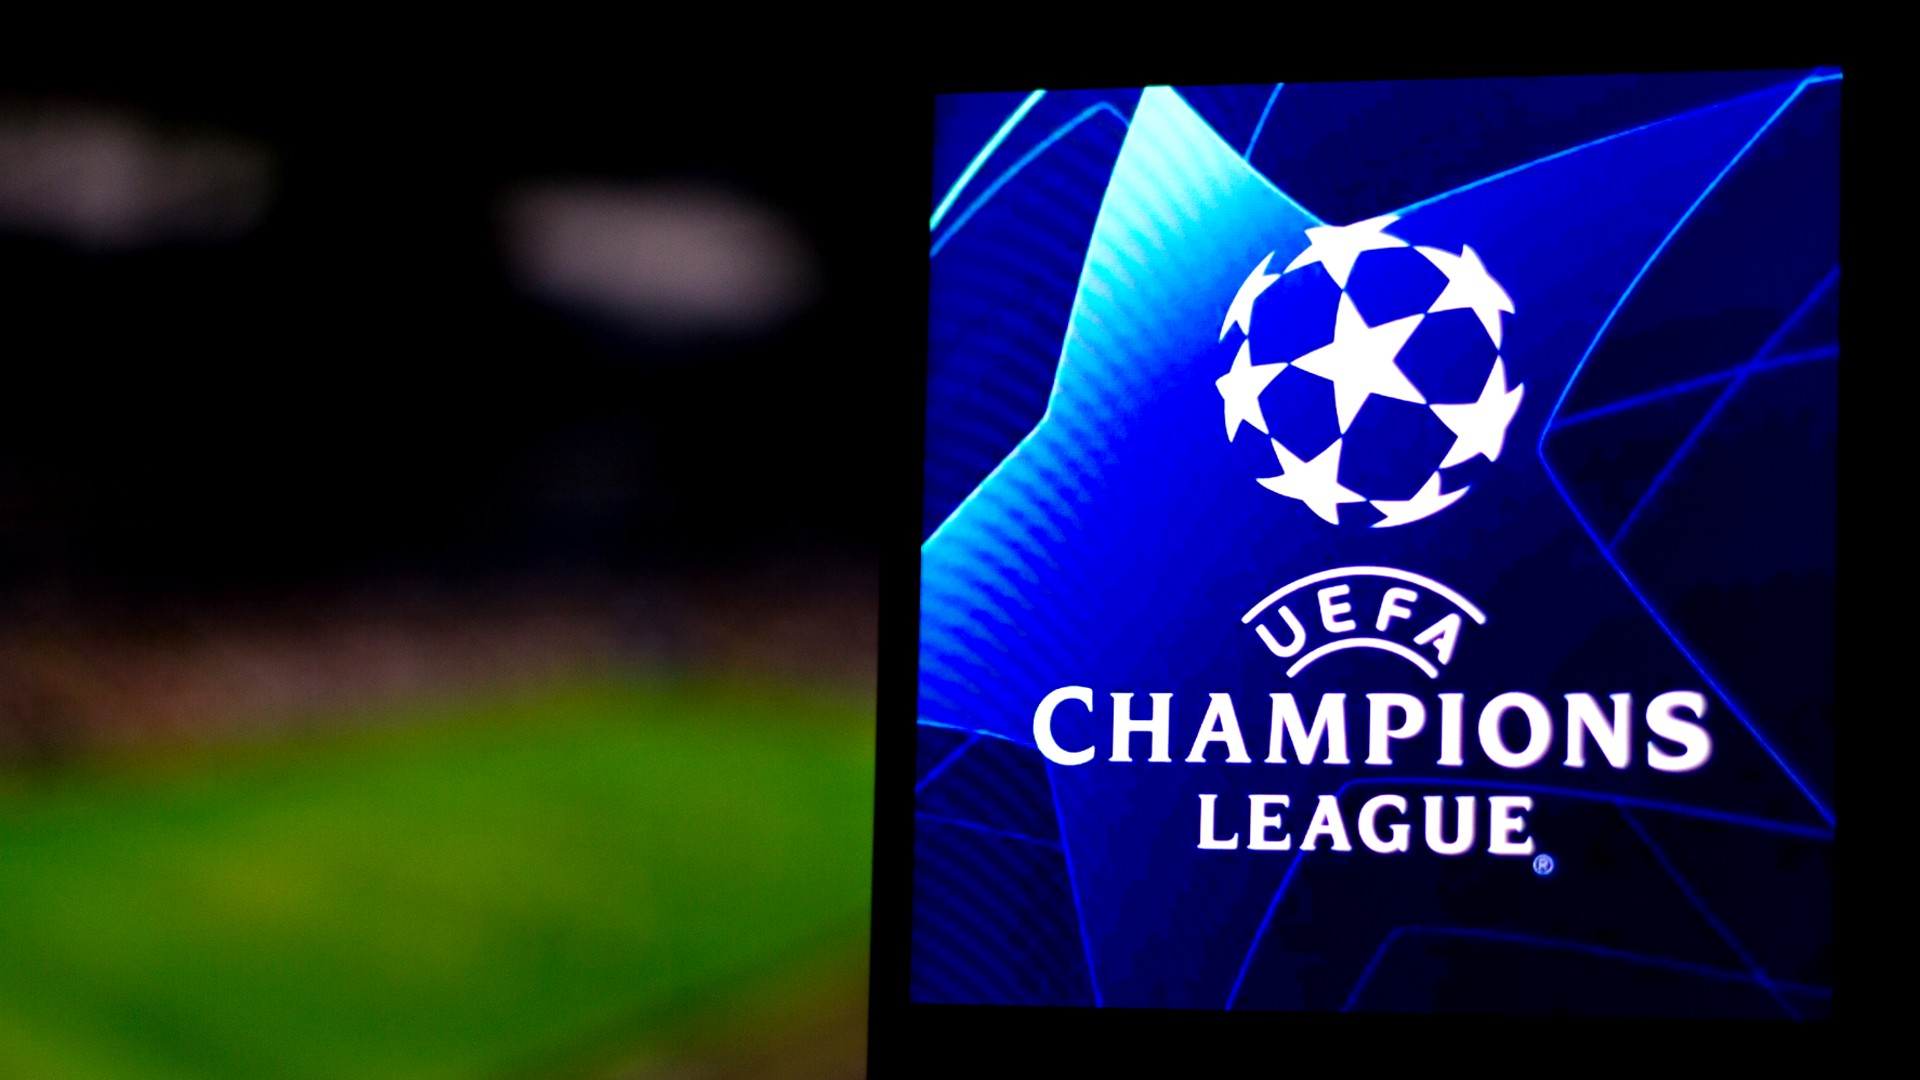 UEFA Champions League schedule: Full list of upcoming matches with TV & streaming